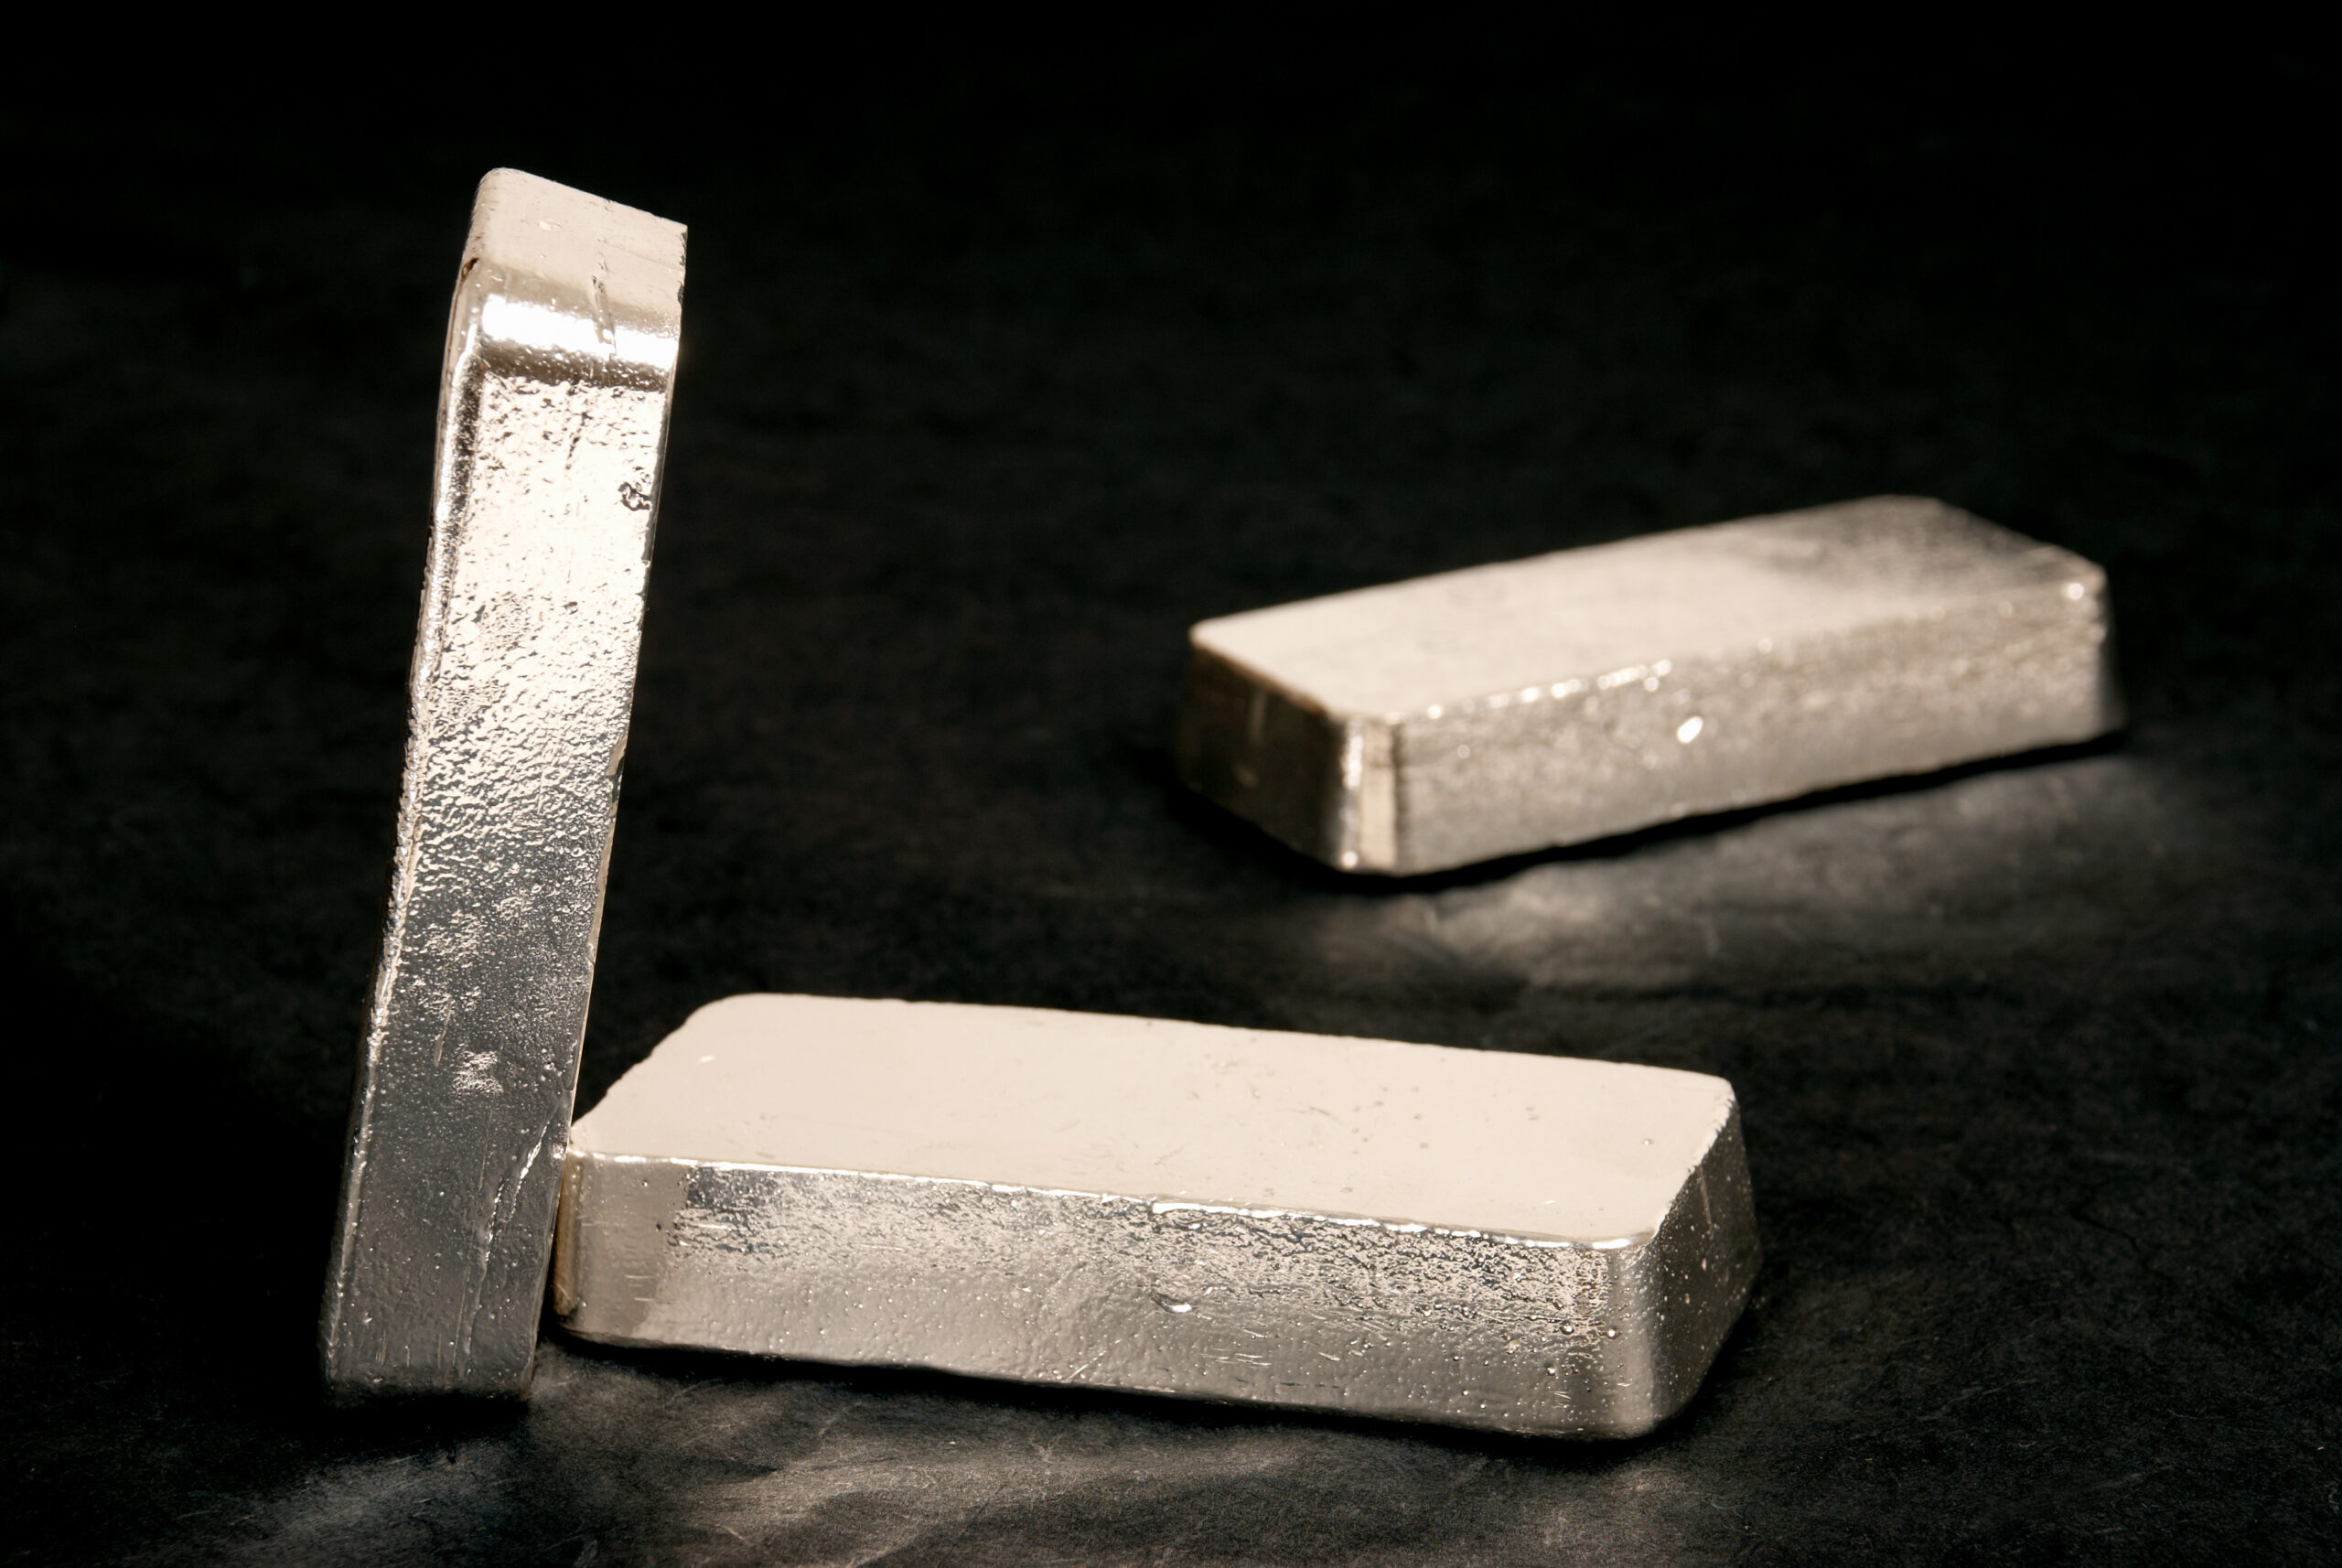 Image of 3 silver bars